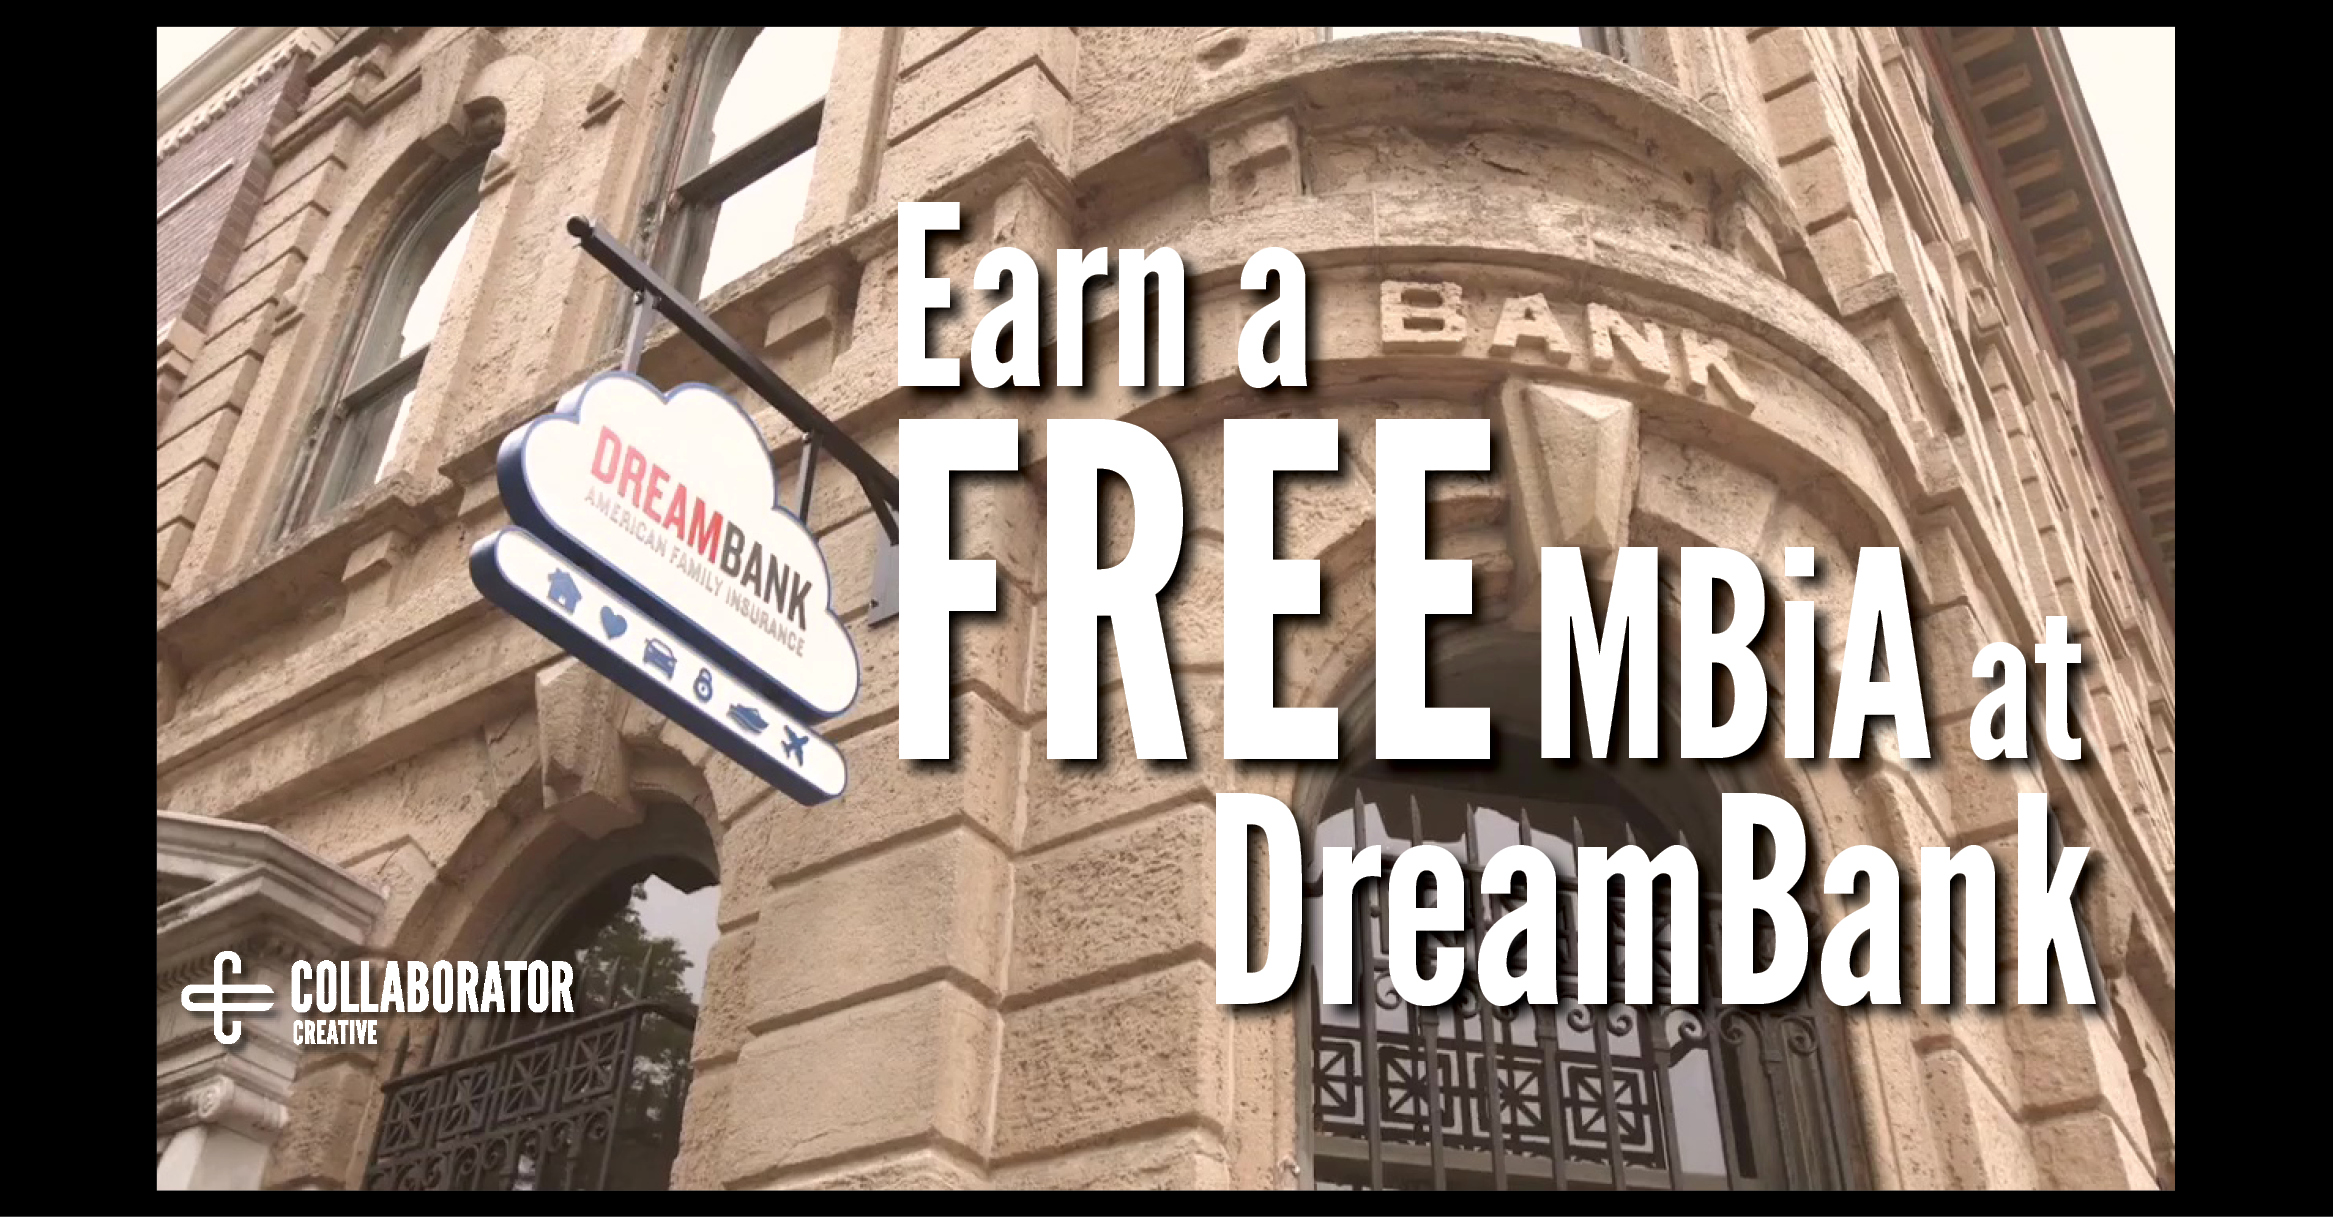 Earn a FREE MBiA at DreamBank blog post by D.P. Knudten COLLABORATOR creative